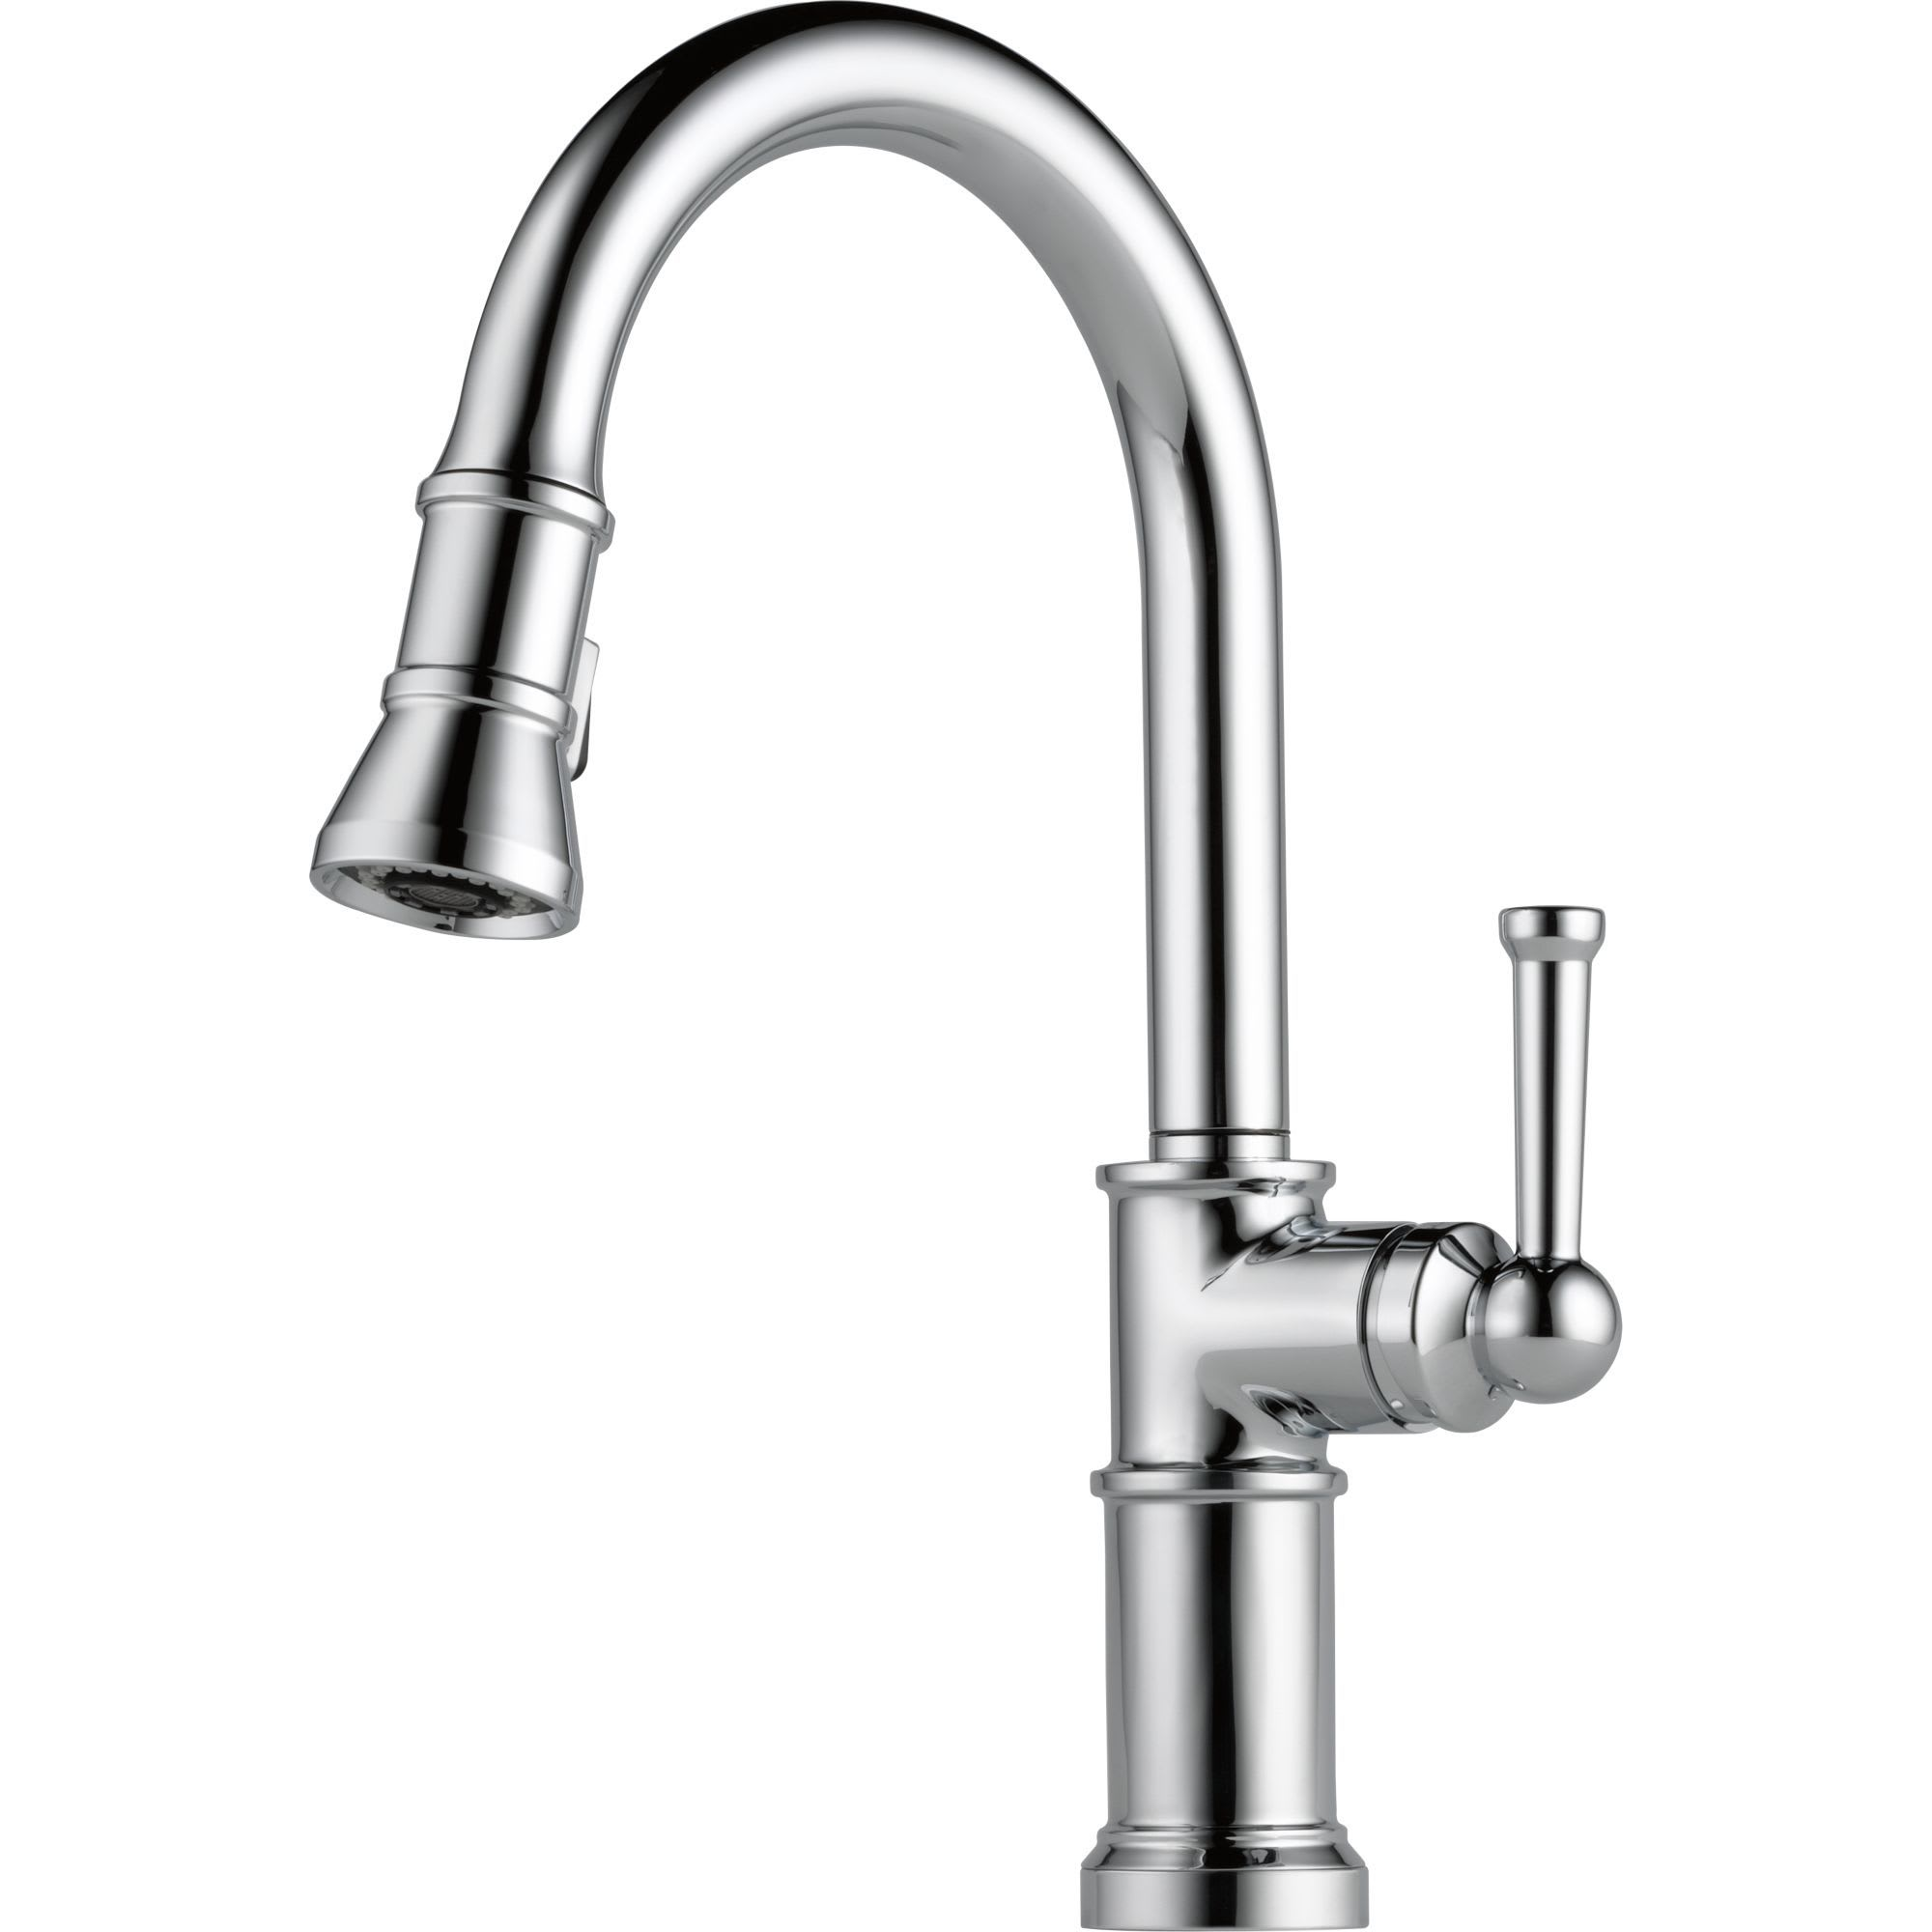 online faucet lavatory brizo handle luxhome rook prices venetian index vessel best faucets single rb bronze